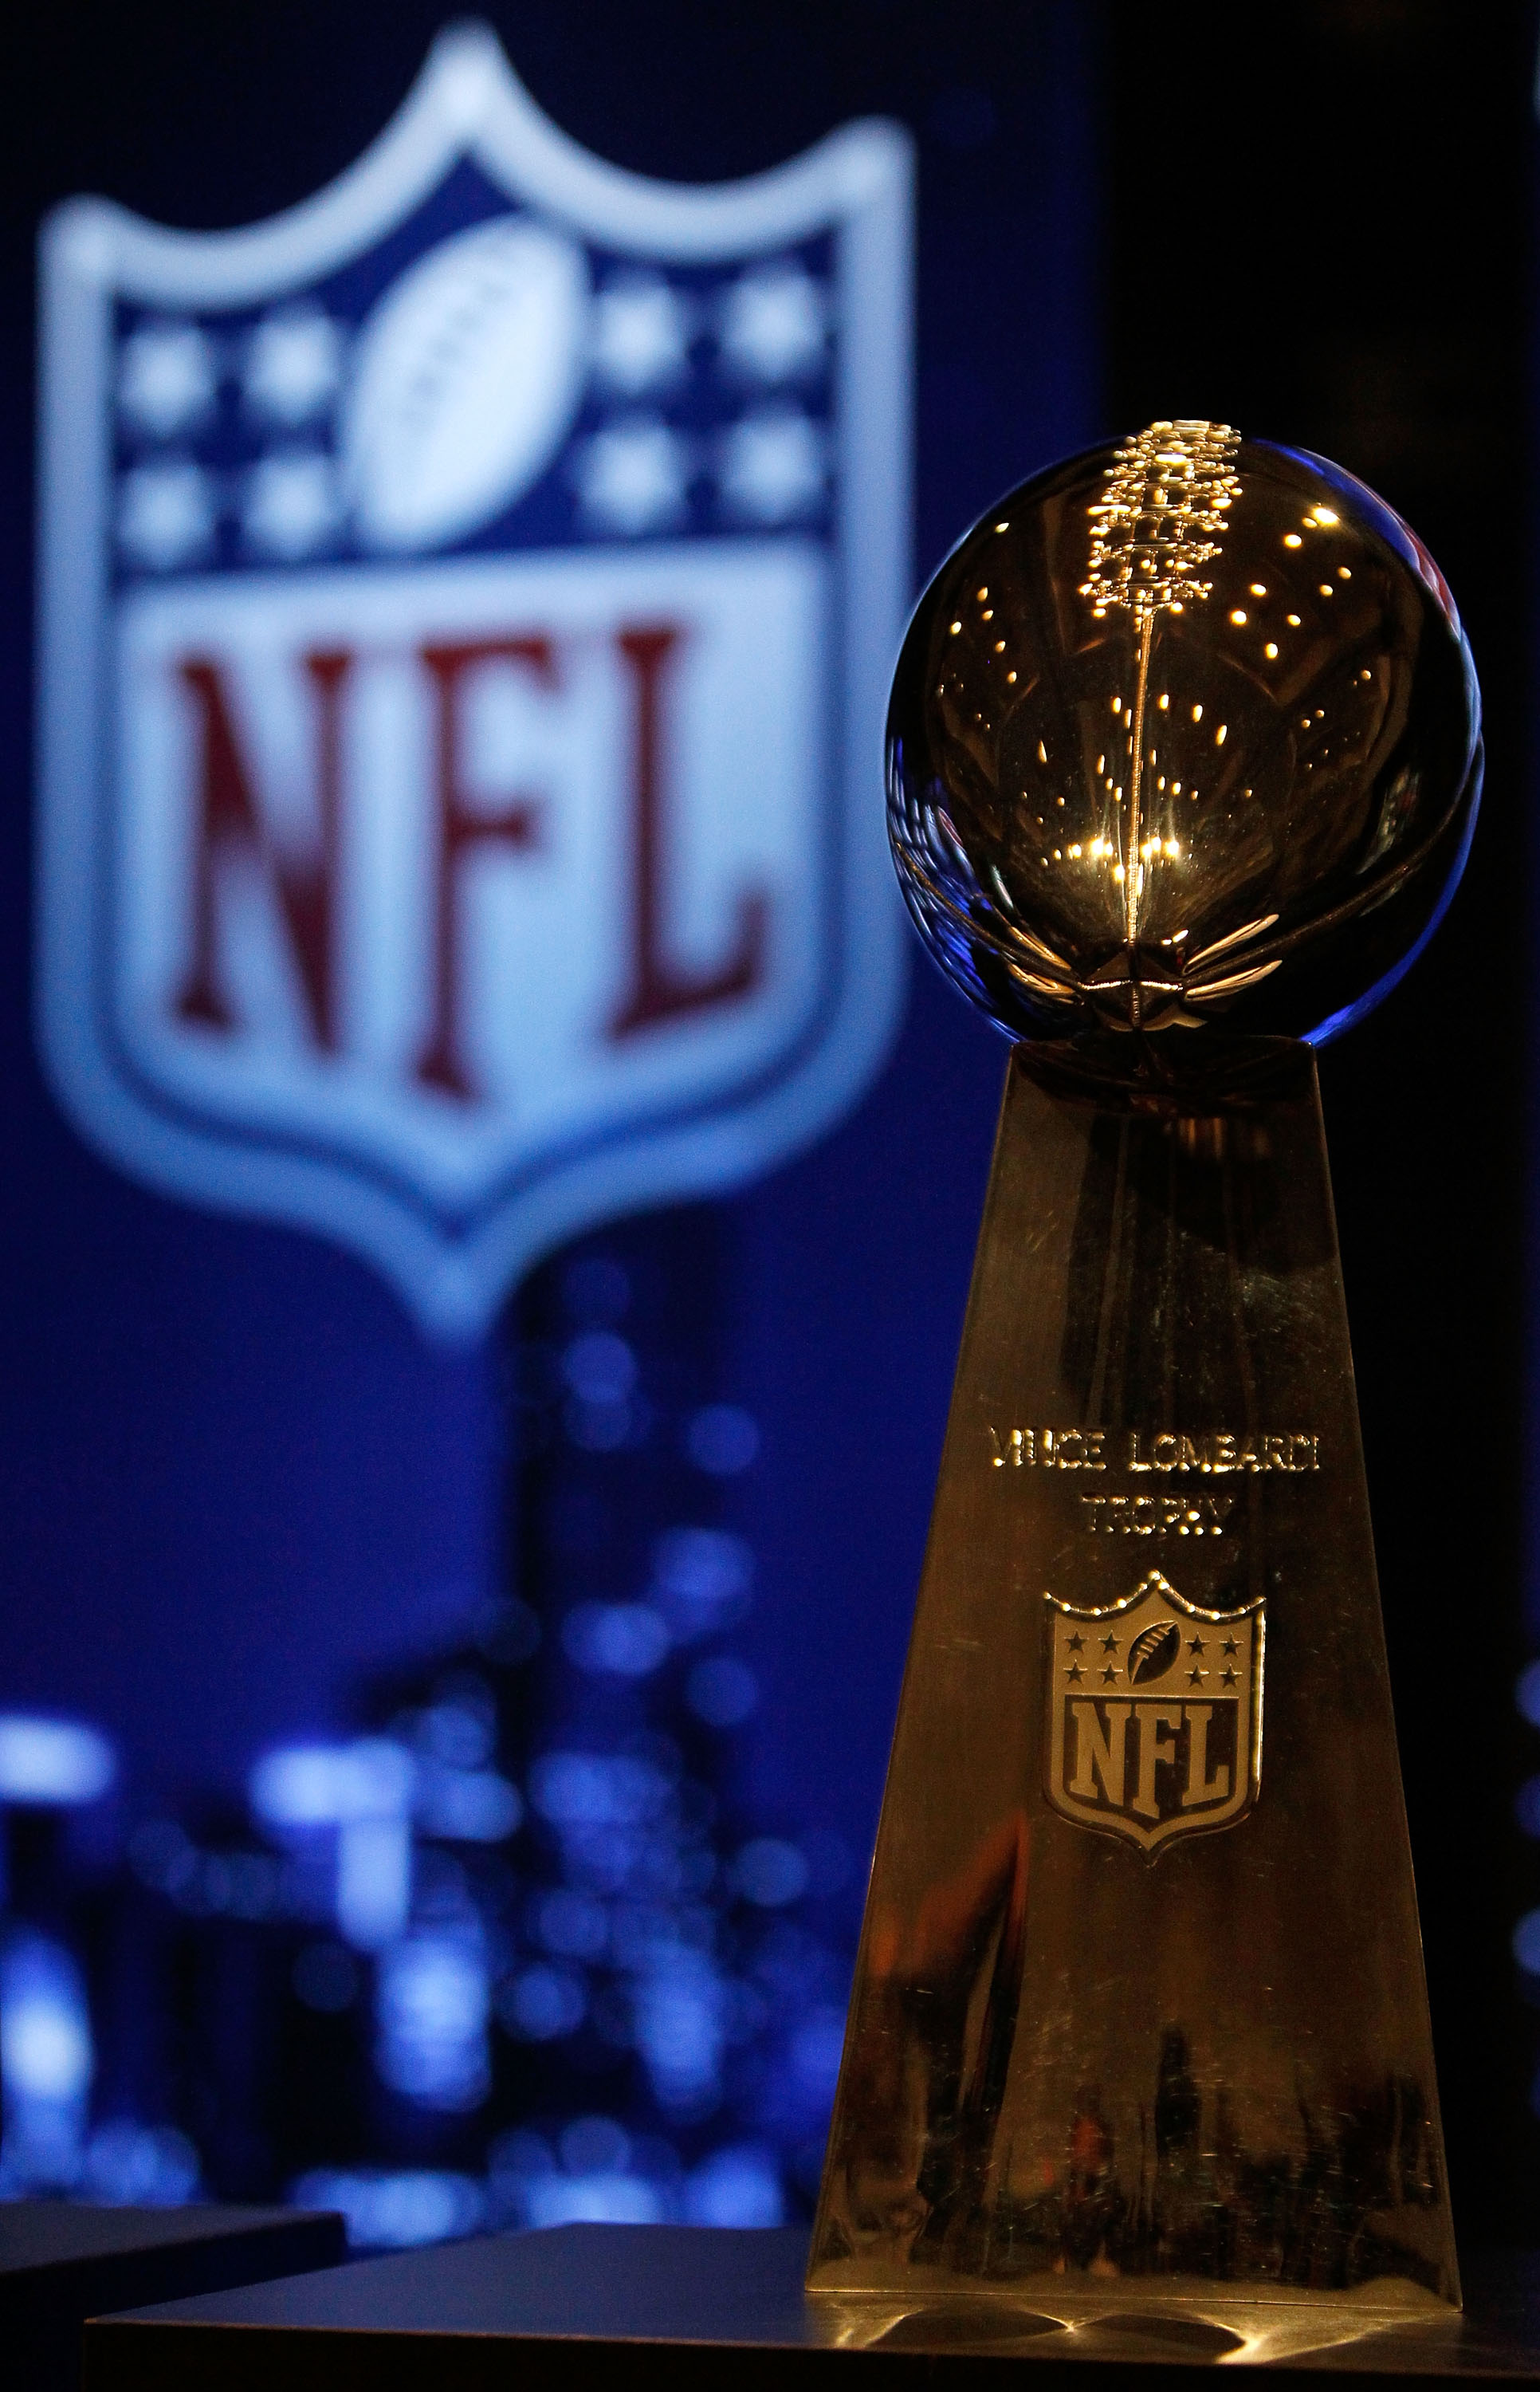 FORT LAUDERDALE, FL - FEBRUARY 05:  The Vince Lombardi Trophy is seen during the NFL Commissioner Press Conference held at the Greater Ft. Lauderdale/Broward County Convention Center as part of media week for Super Bowl XLIV on February 5, 2010 in Fort La